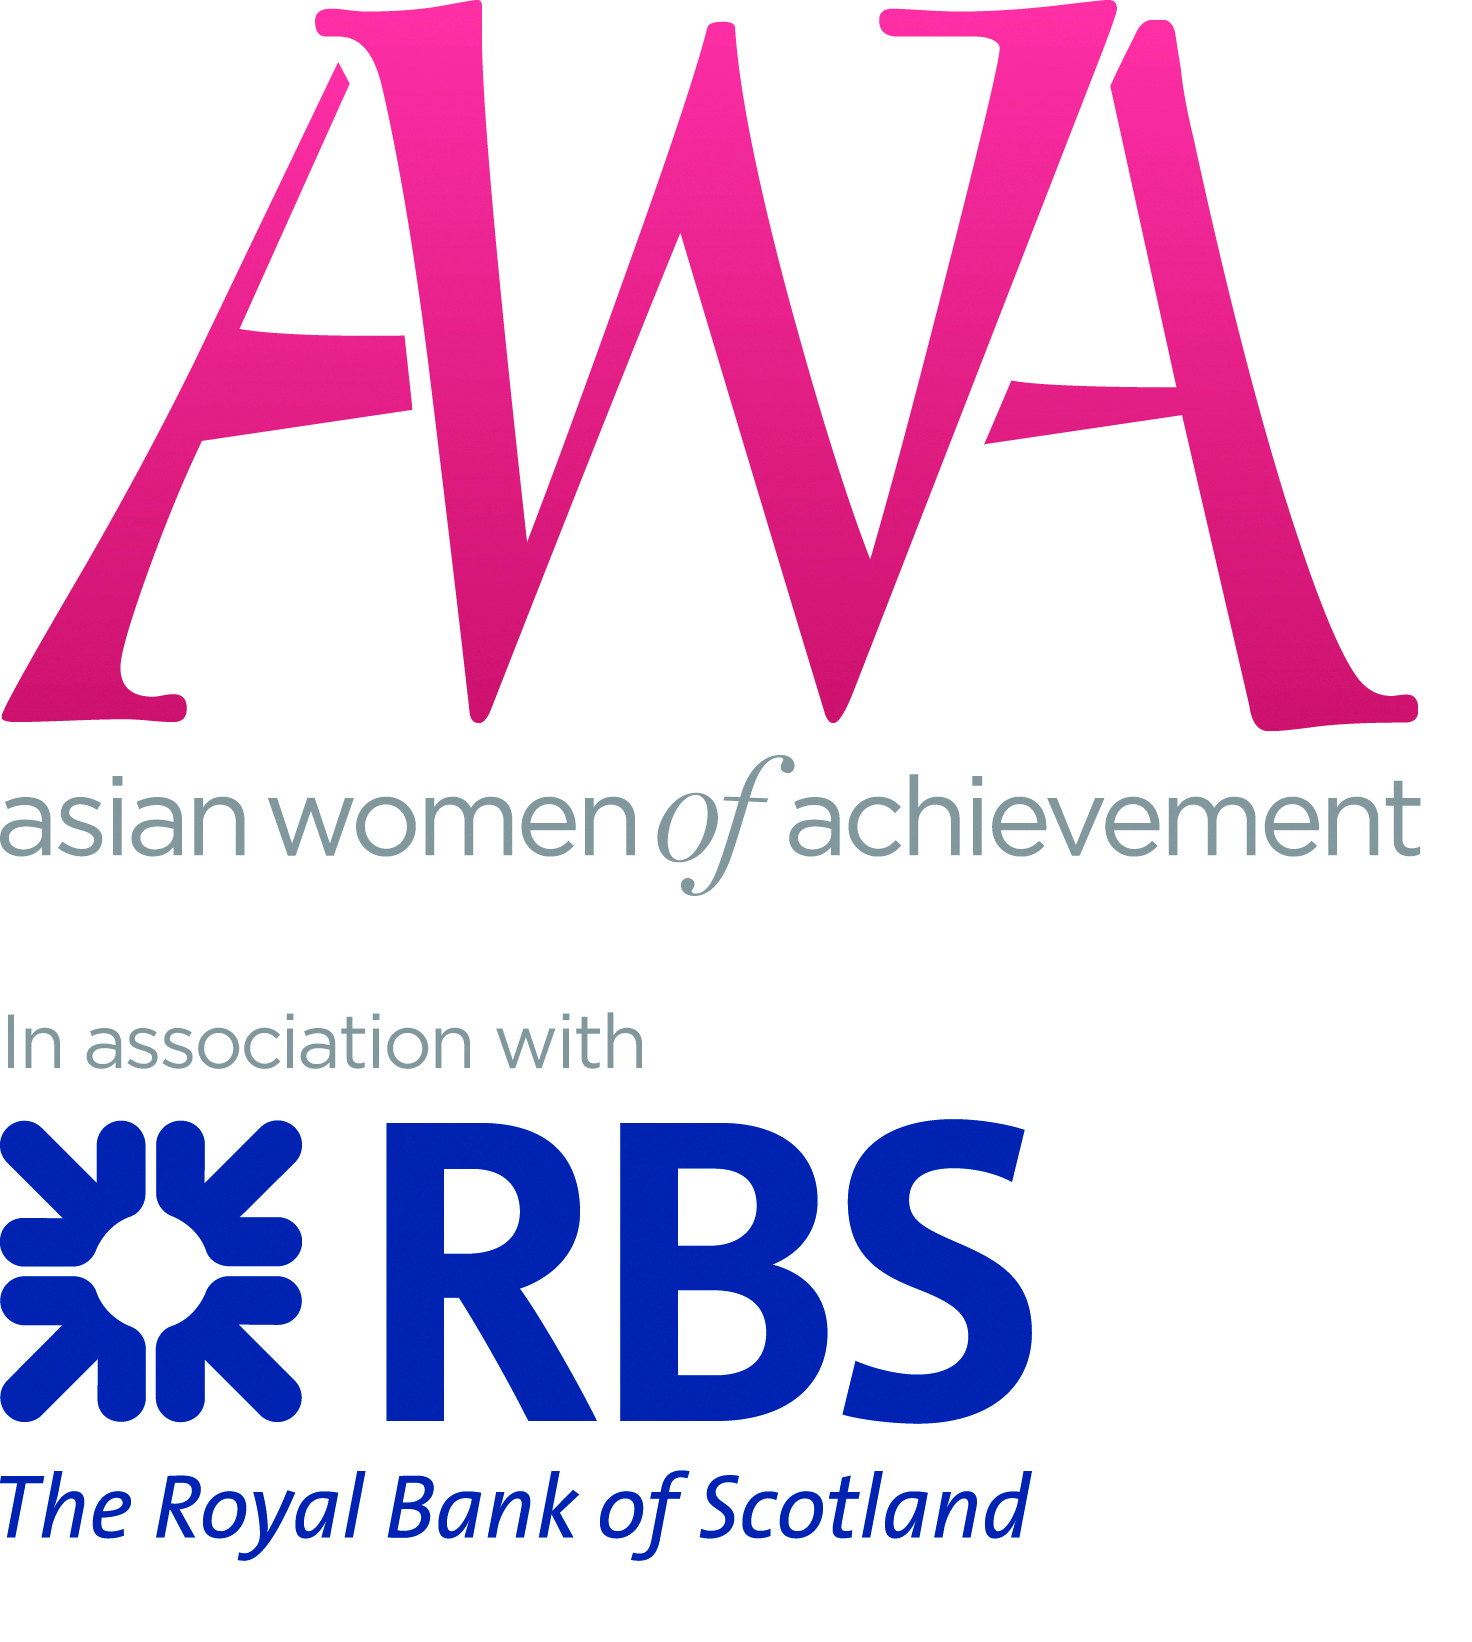 Asian Women of Achievement awards 2013: The winners